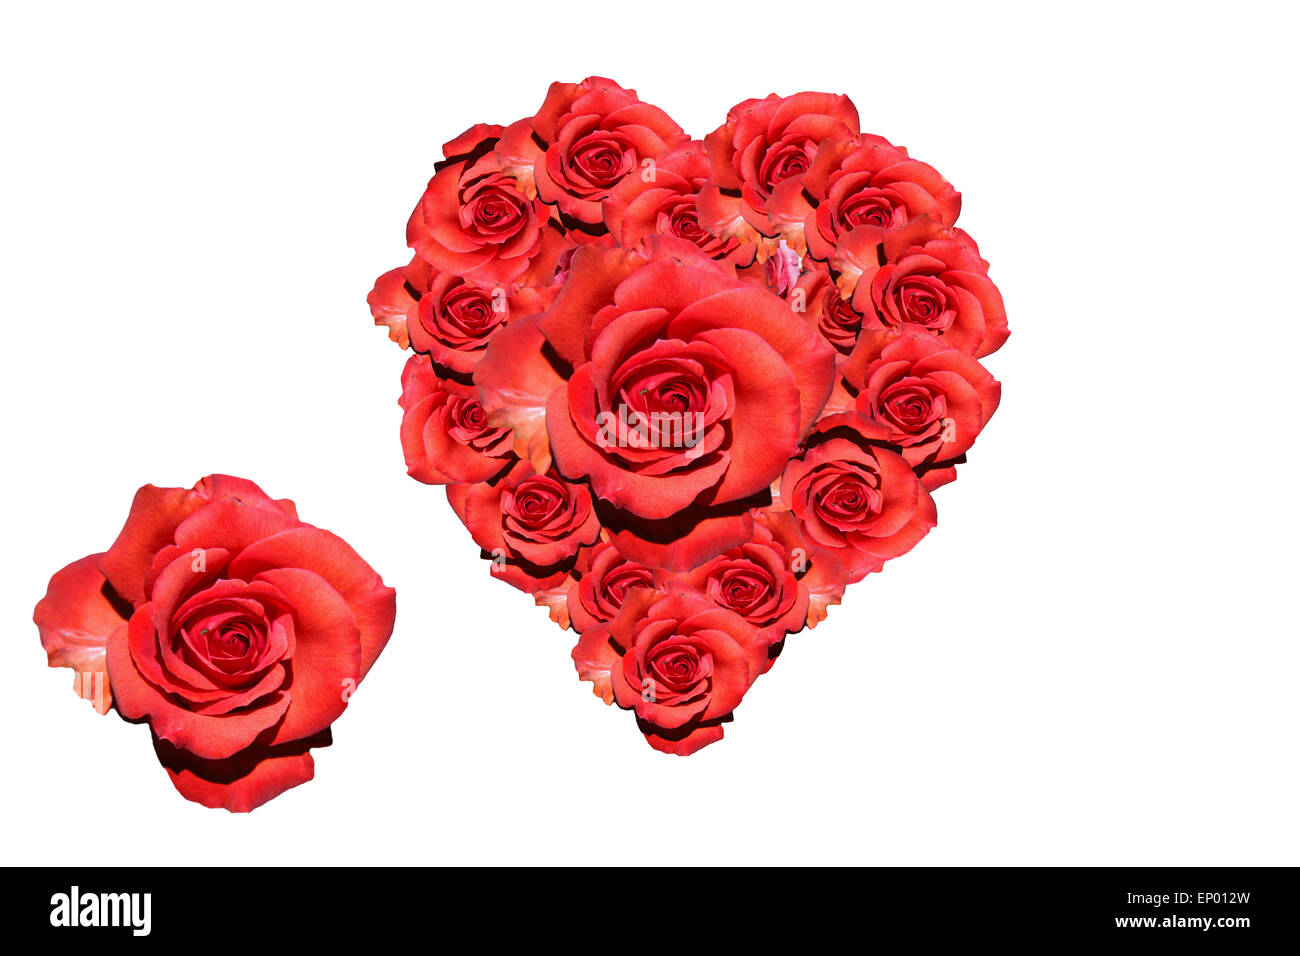 Herz: Rote Rosen   Symbolbild Liebe/ Valentinstag/ Heart: Red Rose    Symbolic Image For Love, Afection And Valentines Day